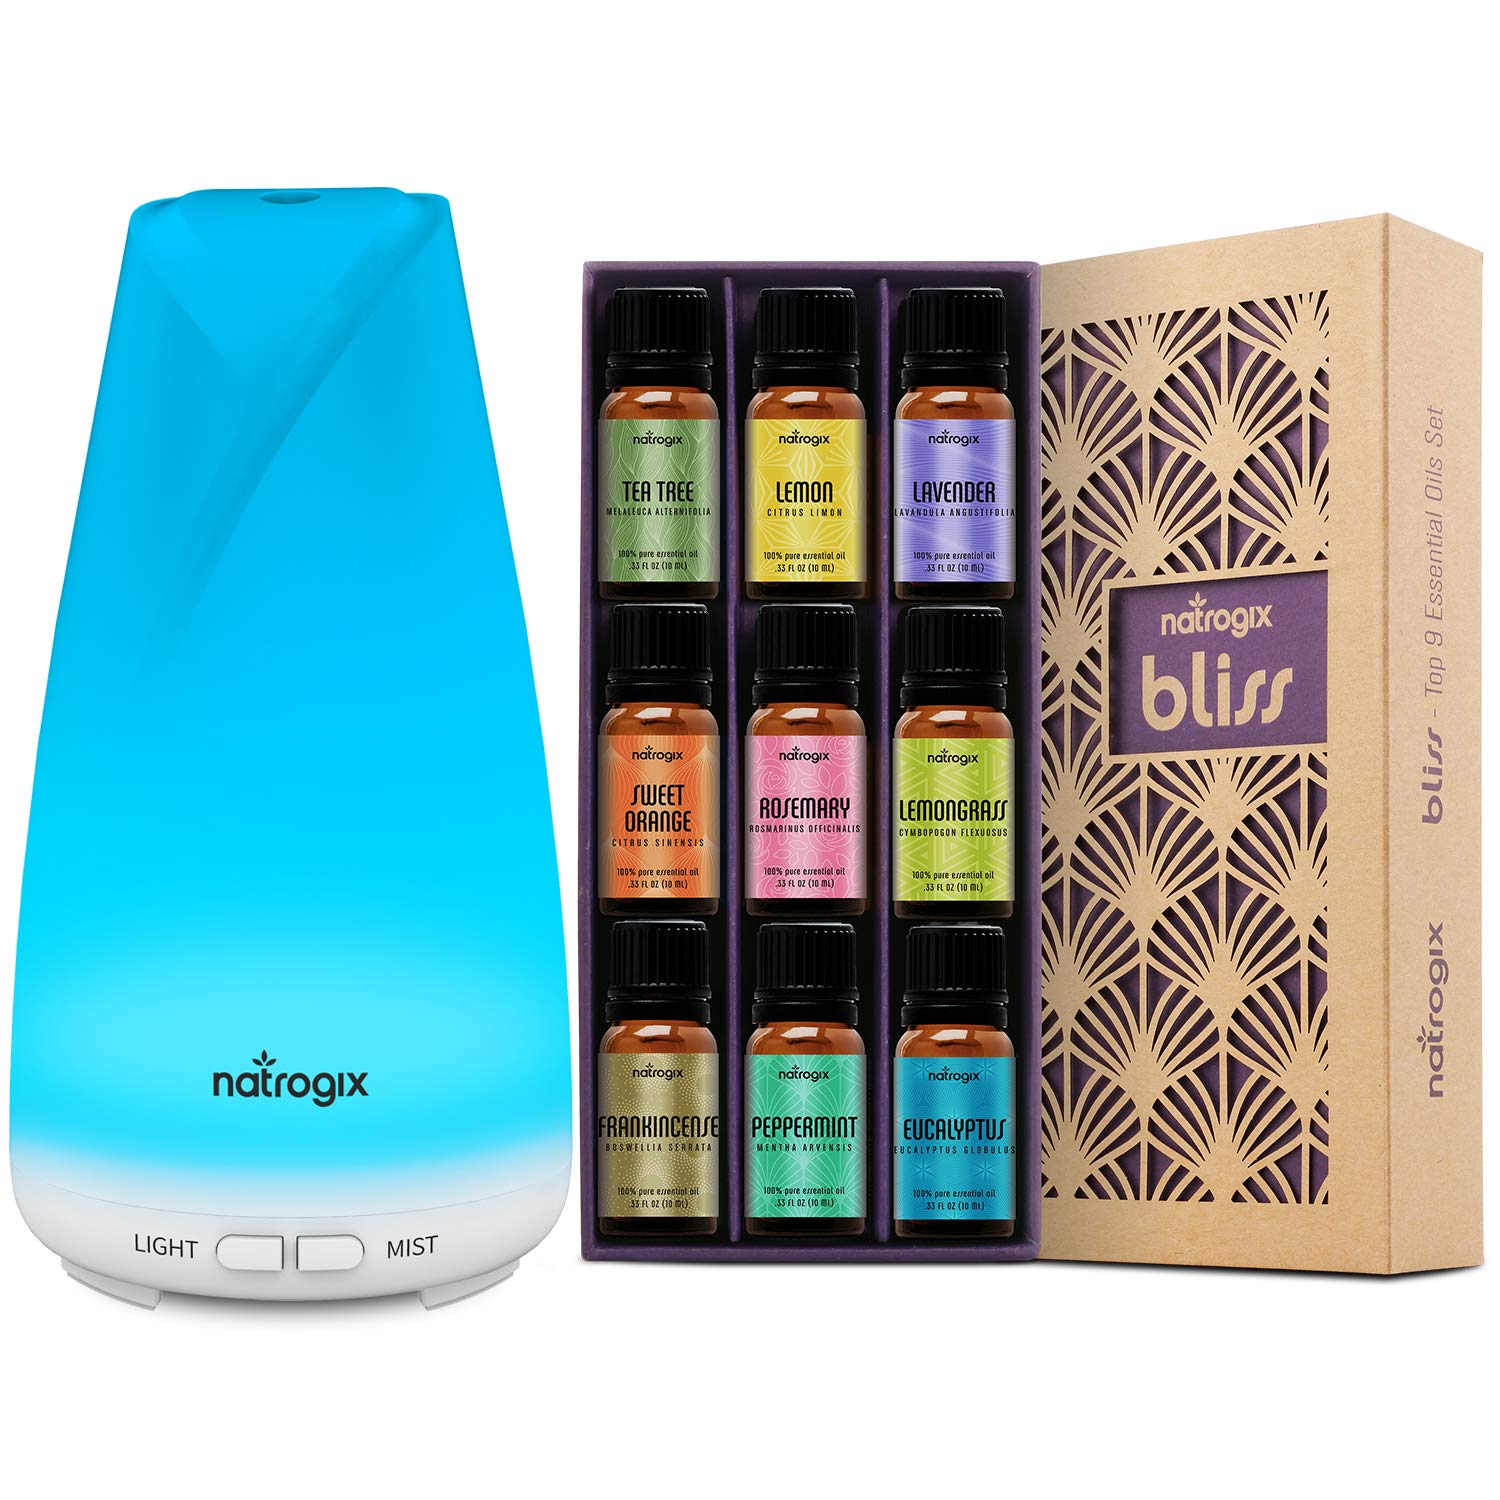 Natrogix Bliss Box - Bliss + Totem Set - Including Top 9 100% Essential Oils Set (9x10ml) and 150 ML Essential Oil Diffuser - Solution for Your Aromatherapy Life by Natrogix